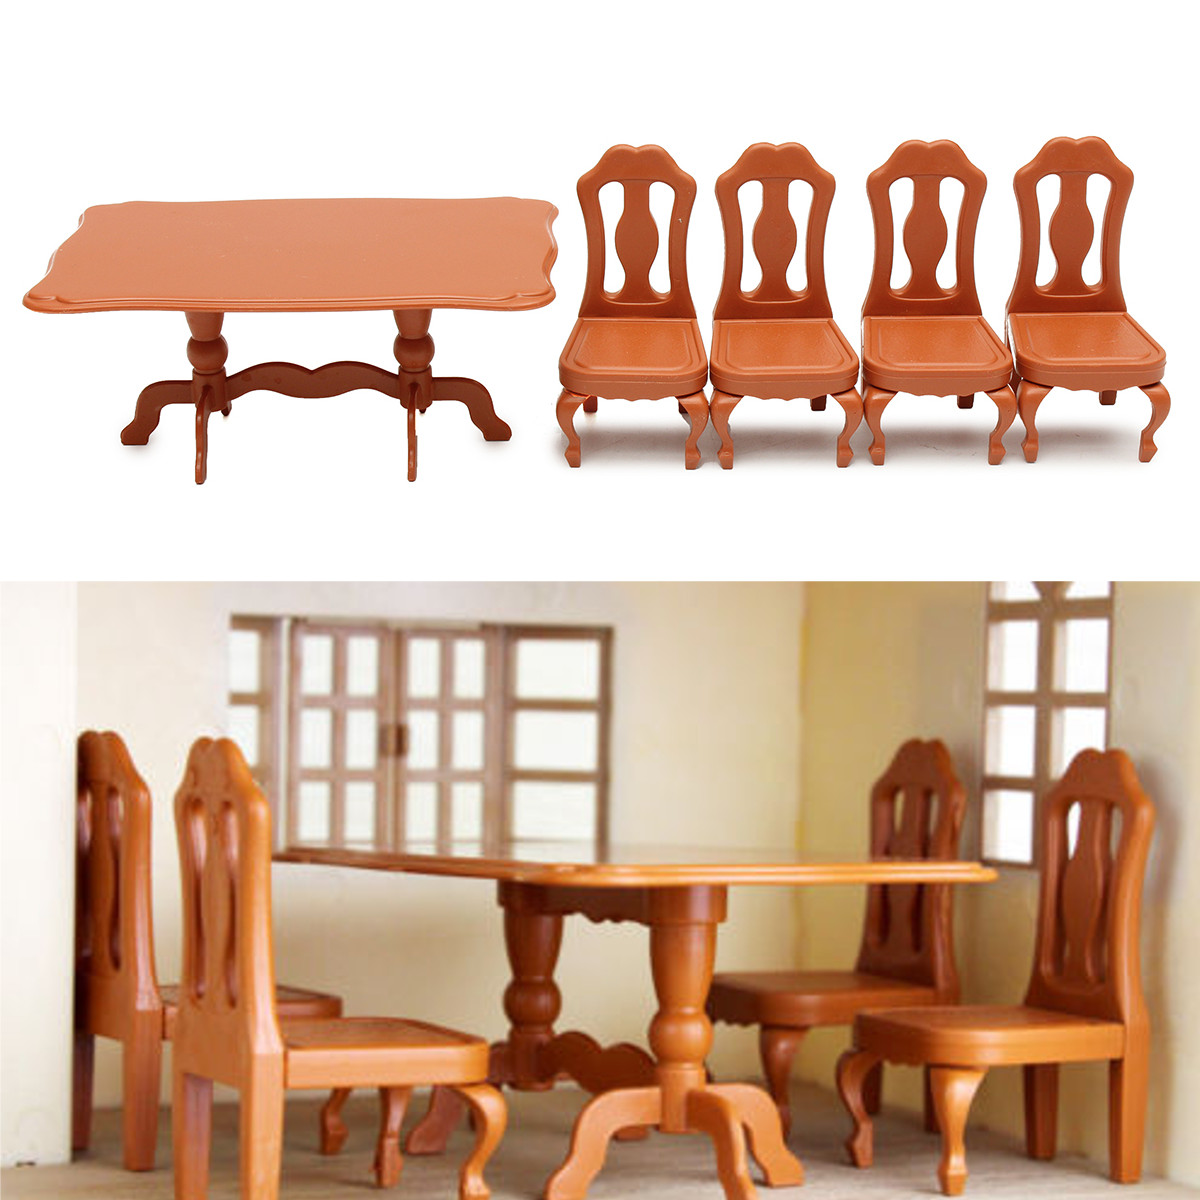 5pcs DIY Miniatura Furniture Dining Tables Chairs Sets For Mini Doll House Miniatures Furniture Toys Gifts For Children Adult